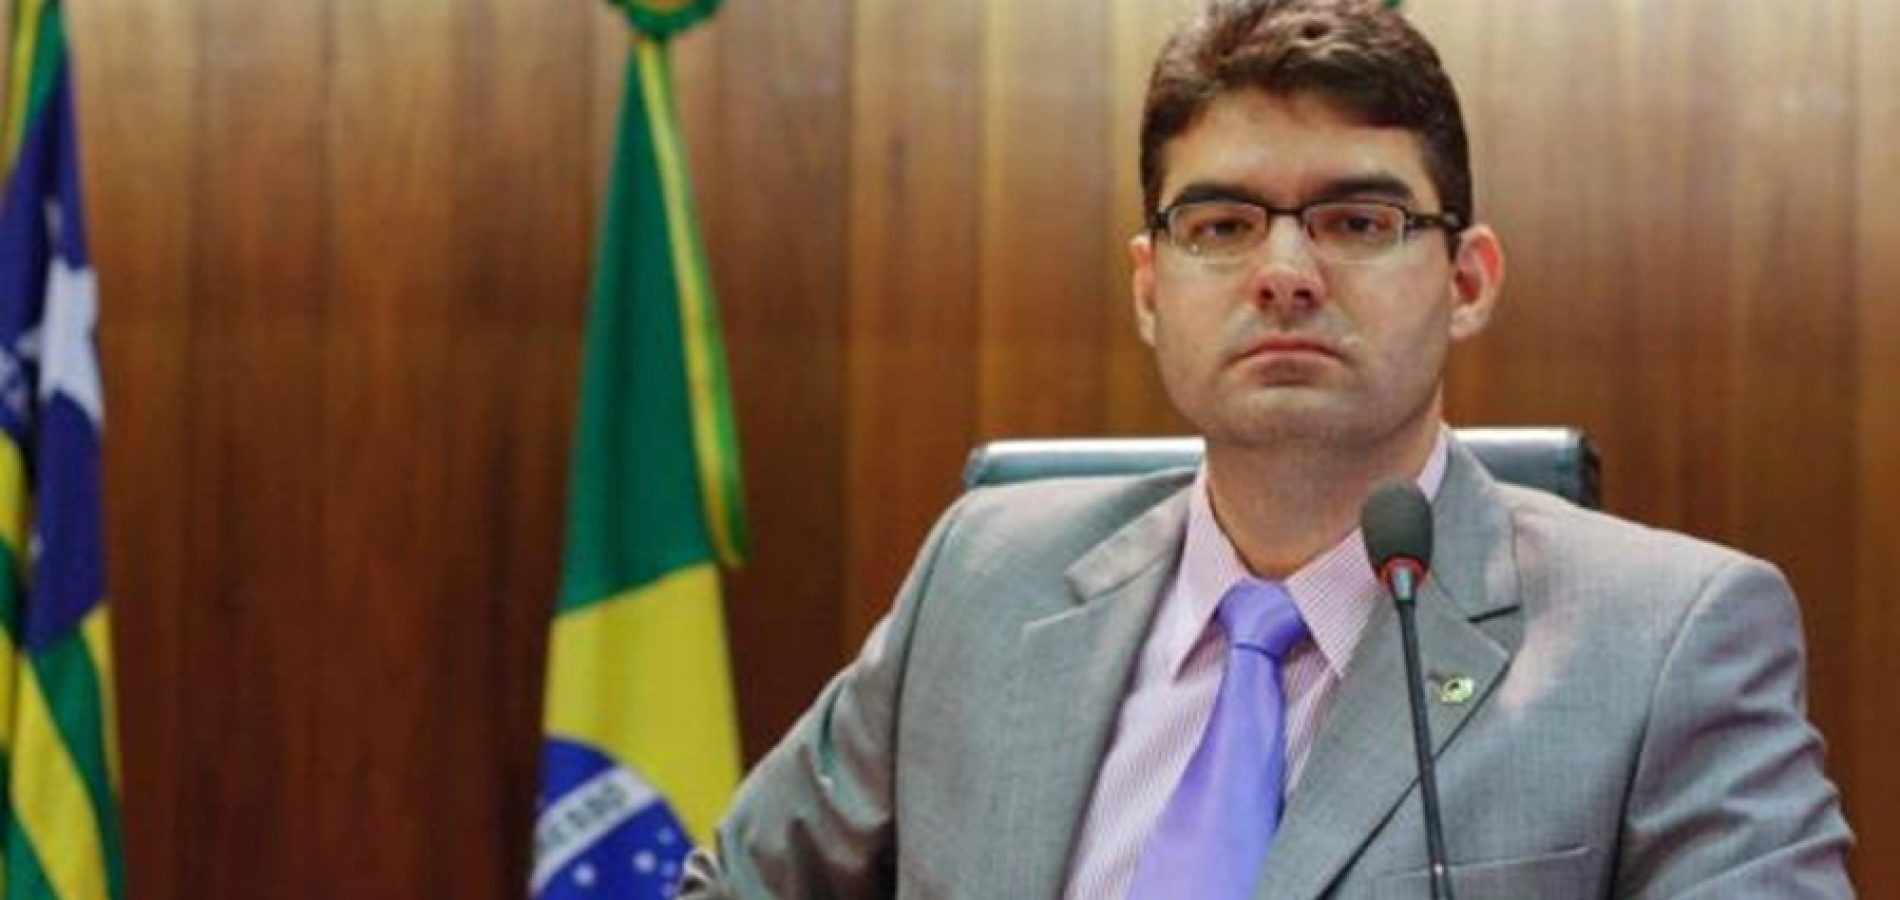 Luciano recebe apoio de partidos da base governista no interior do estado